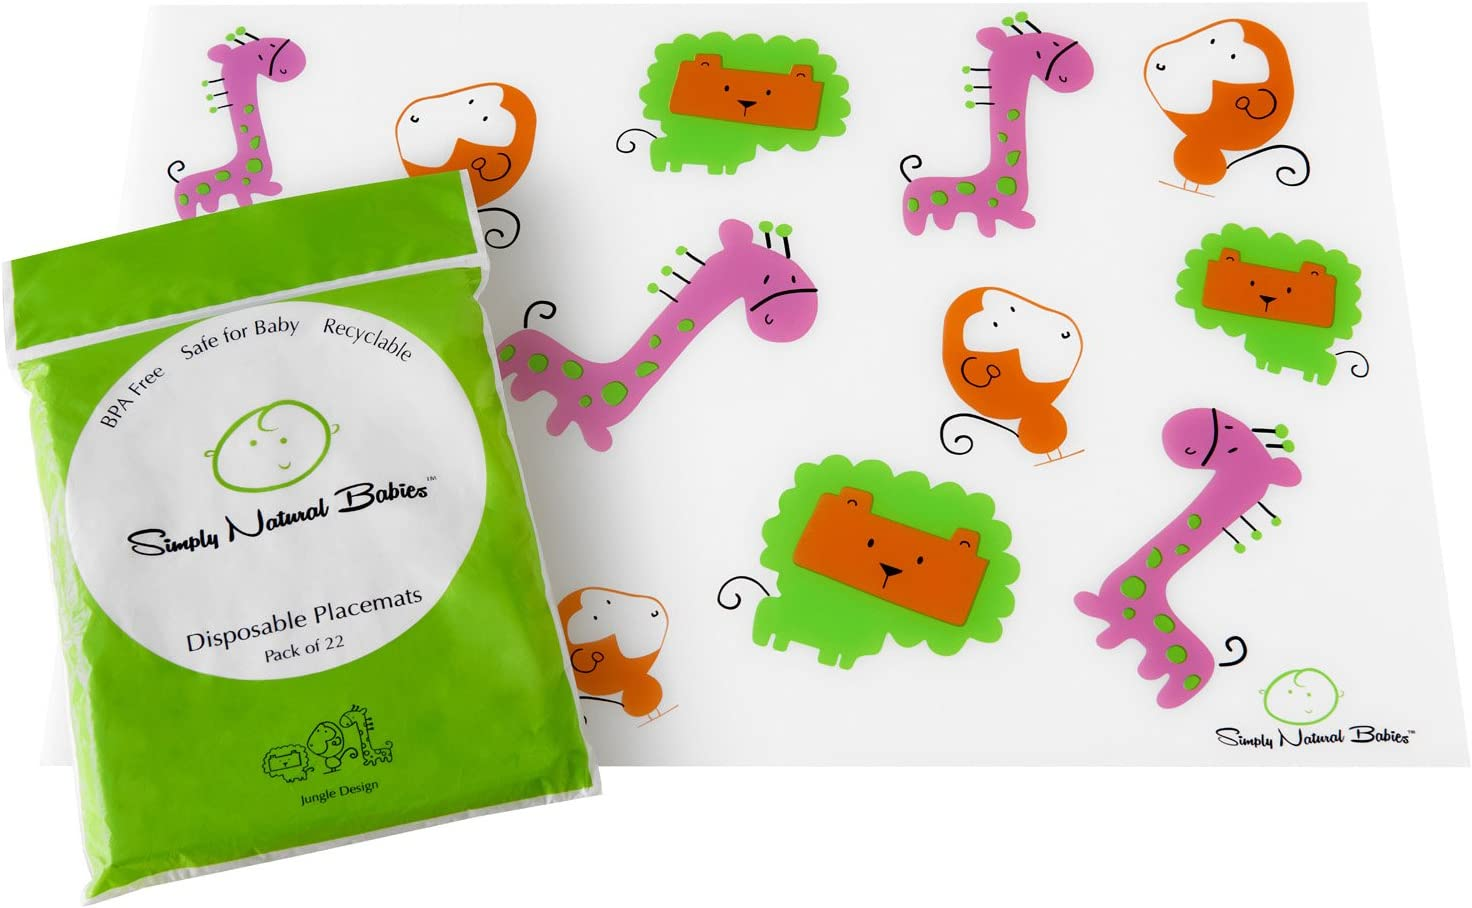 3 Bags of 22 - BPA FREE 66-Count Table Mats for Baby and Toddlers Premium CHIC Disposable Placemats